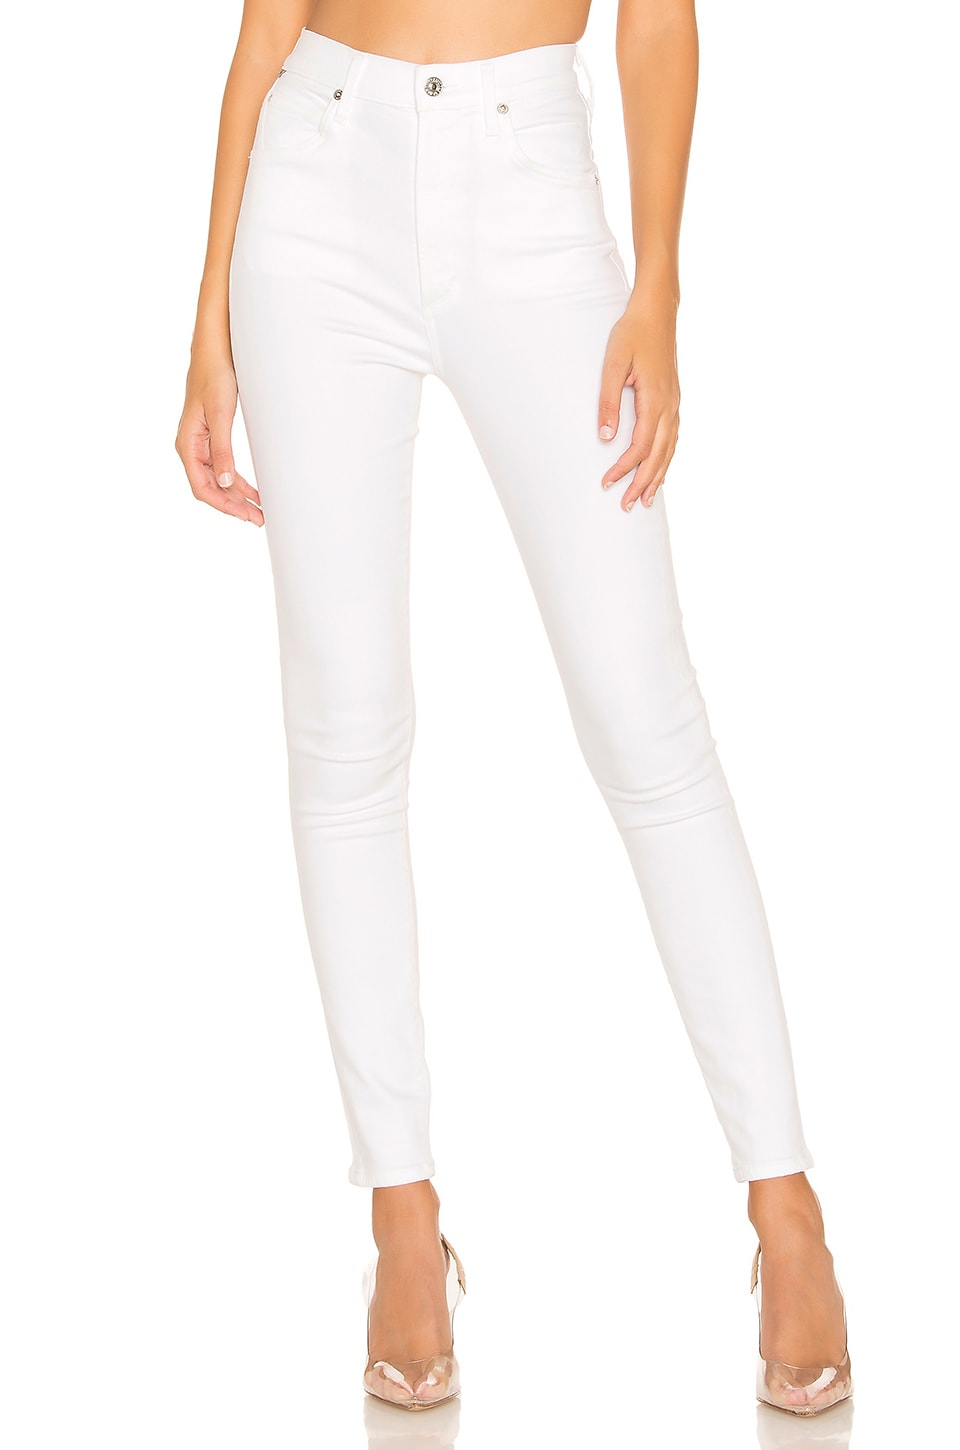 Citizens of Humanity Chrissy High Rise Skinny in White Sculpt